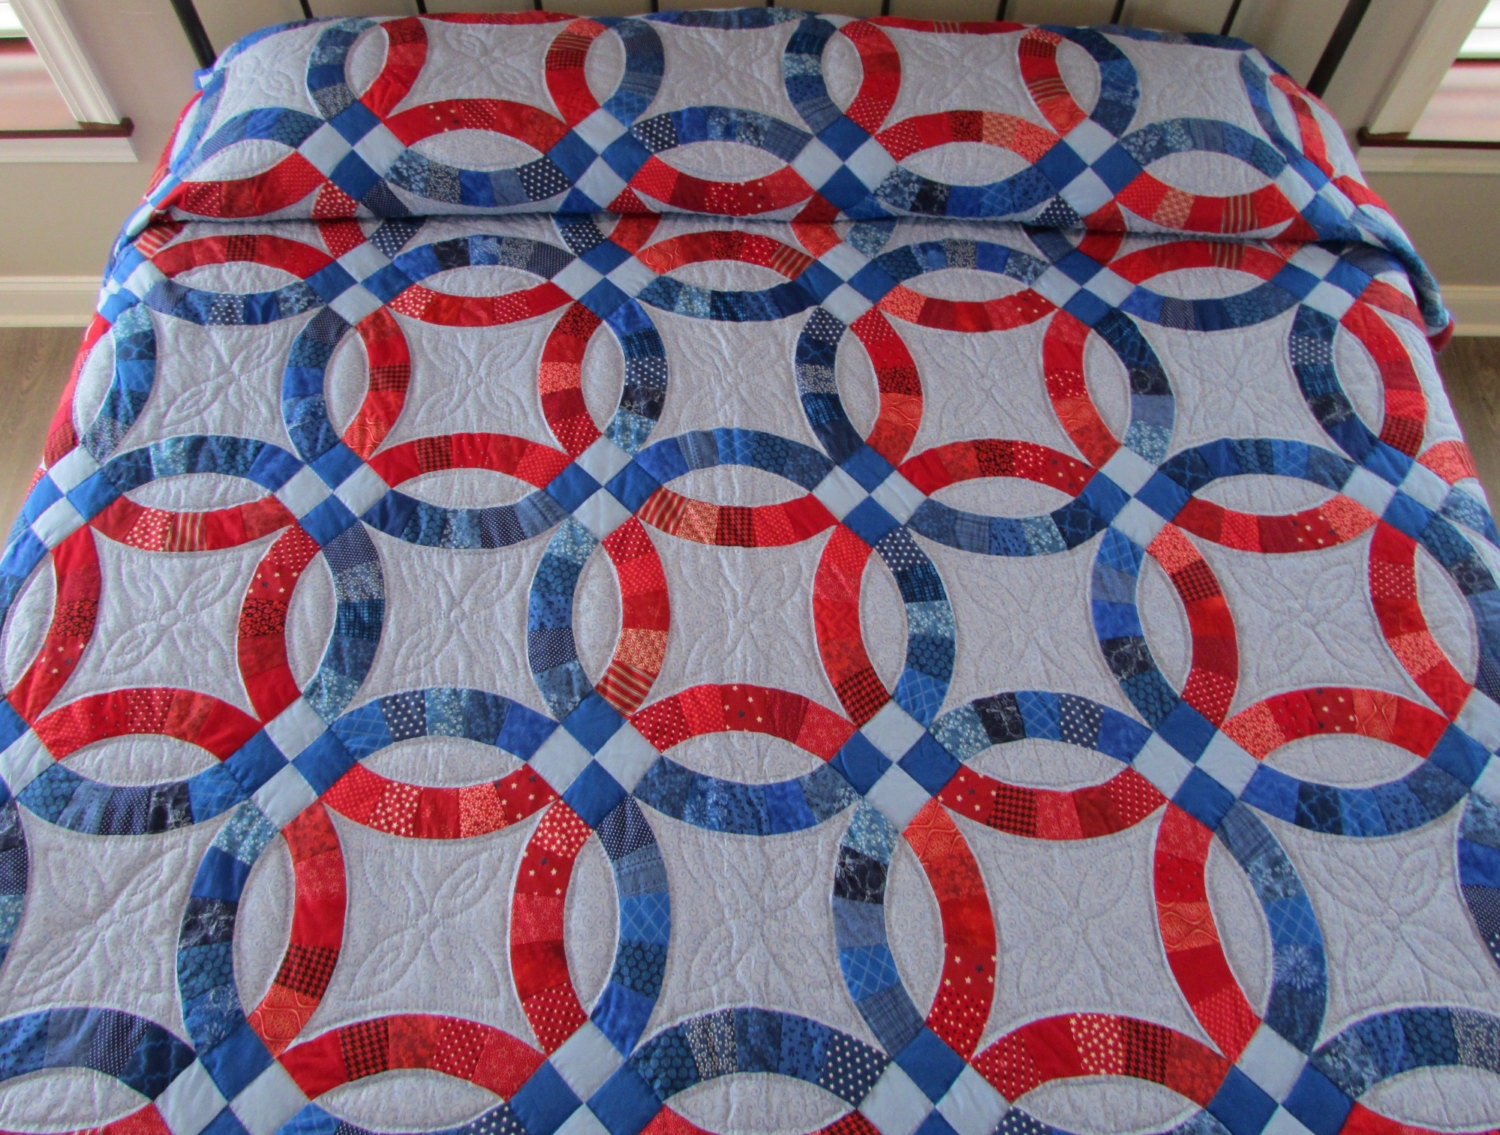 double wedding ring quilt hand made quilt king size quilt red and blue - Wedding Ring Quilt